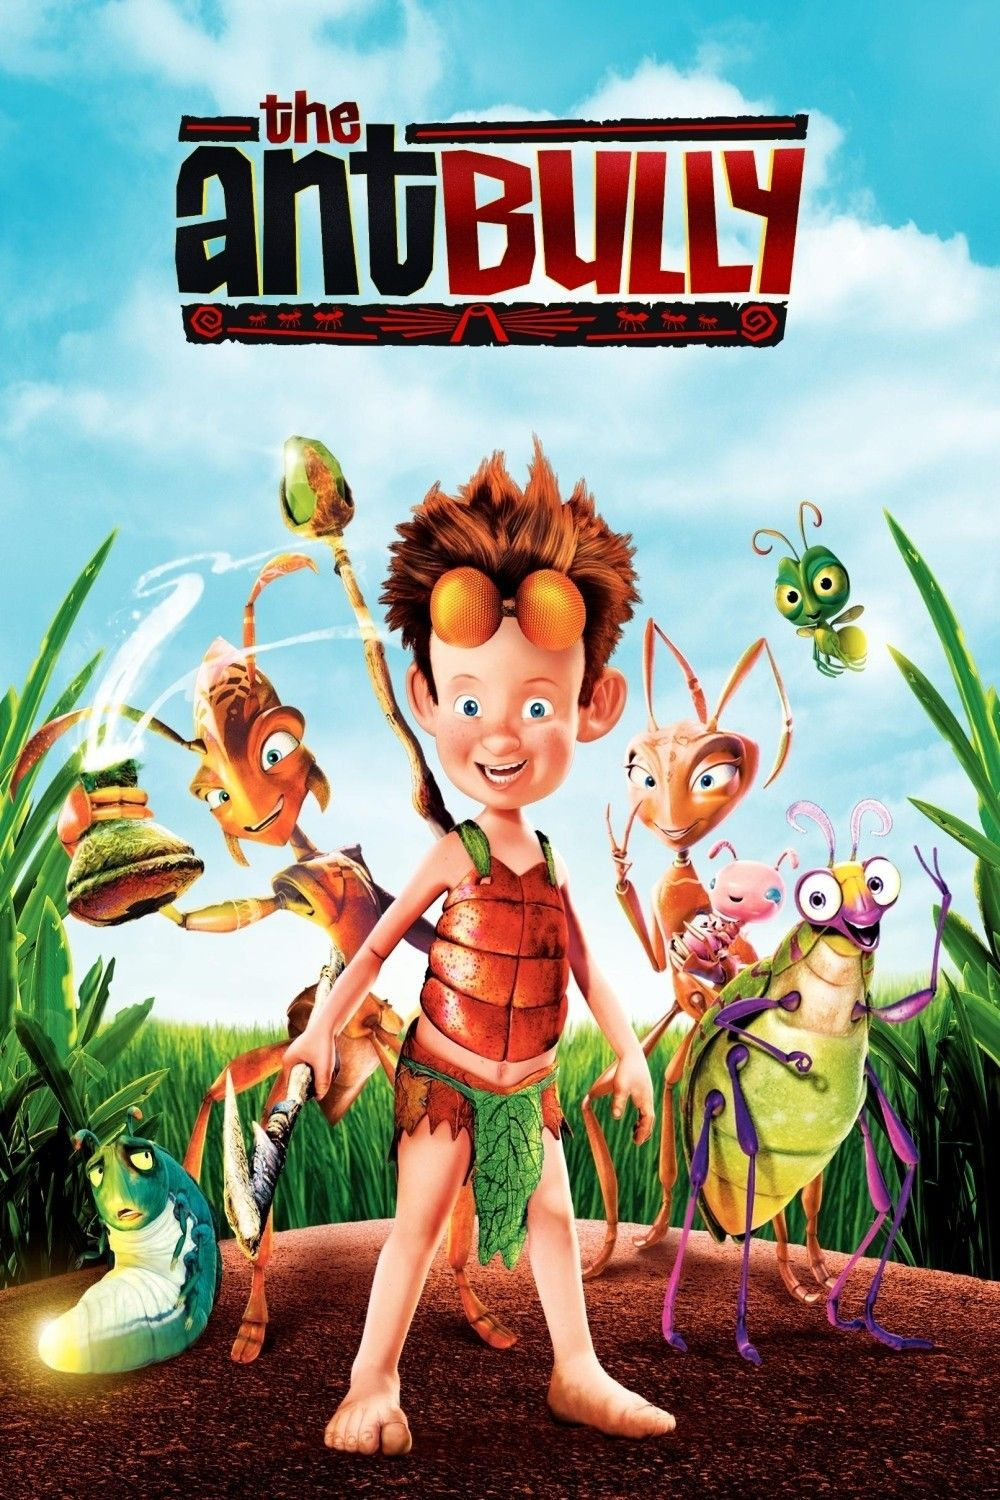 click image to watch The Ant Bully (2006) (With images